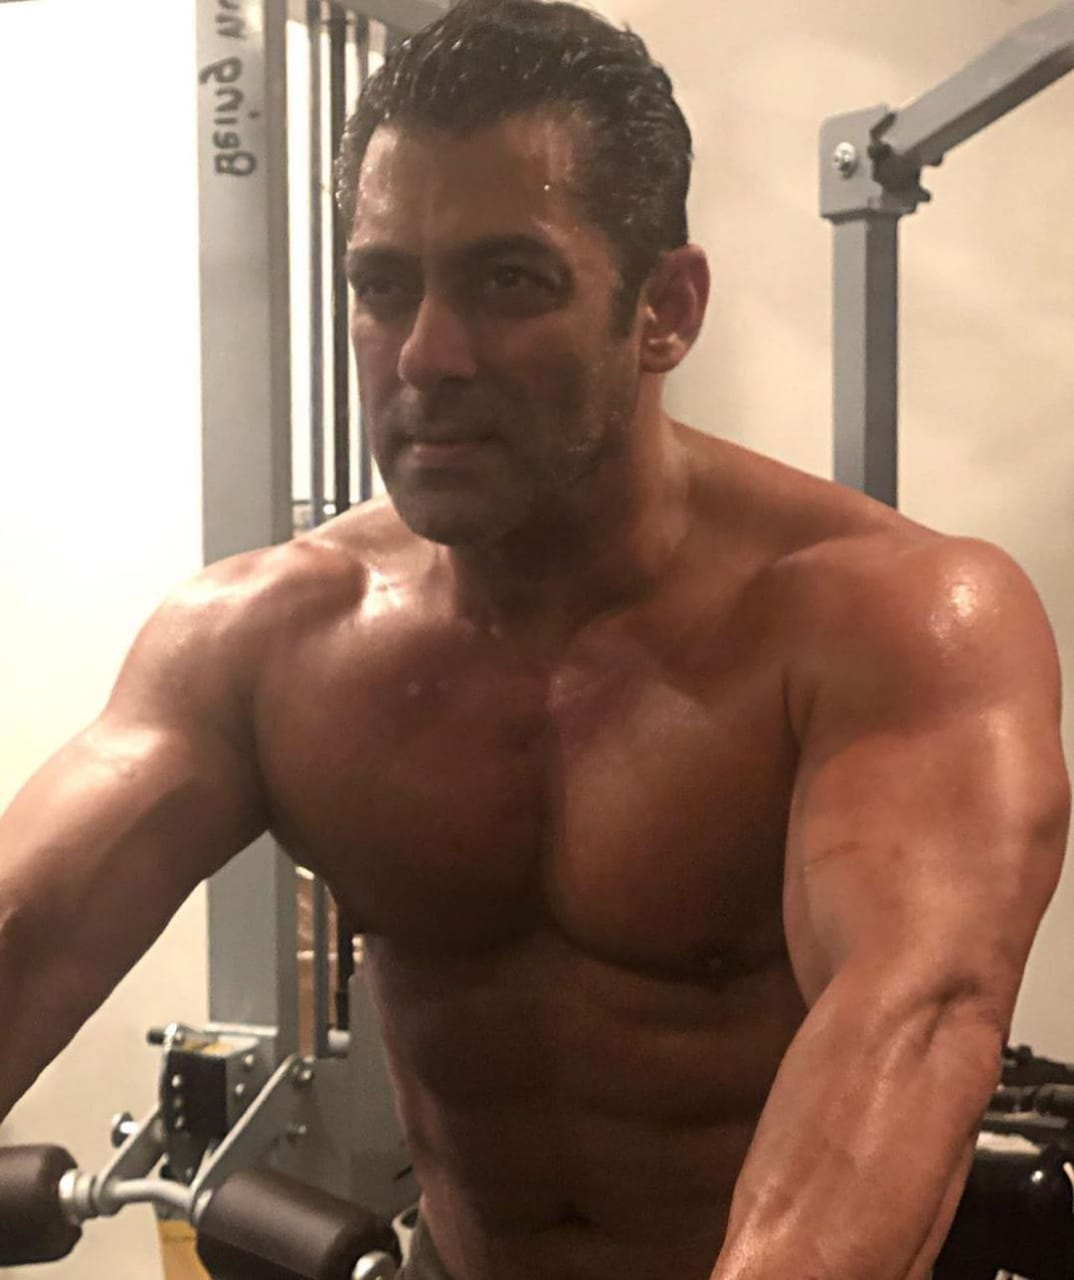 SALMAN KHAN PROMOTING FITNESS WORKOUT